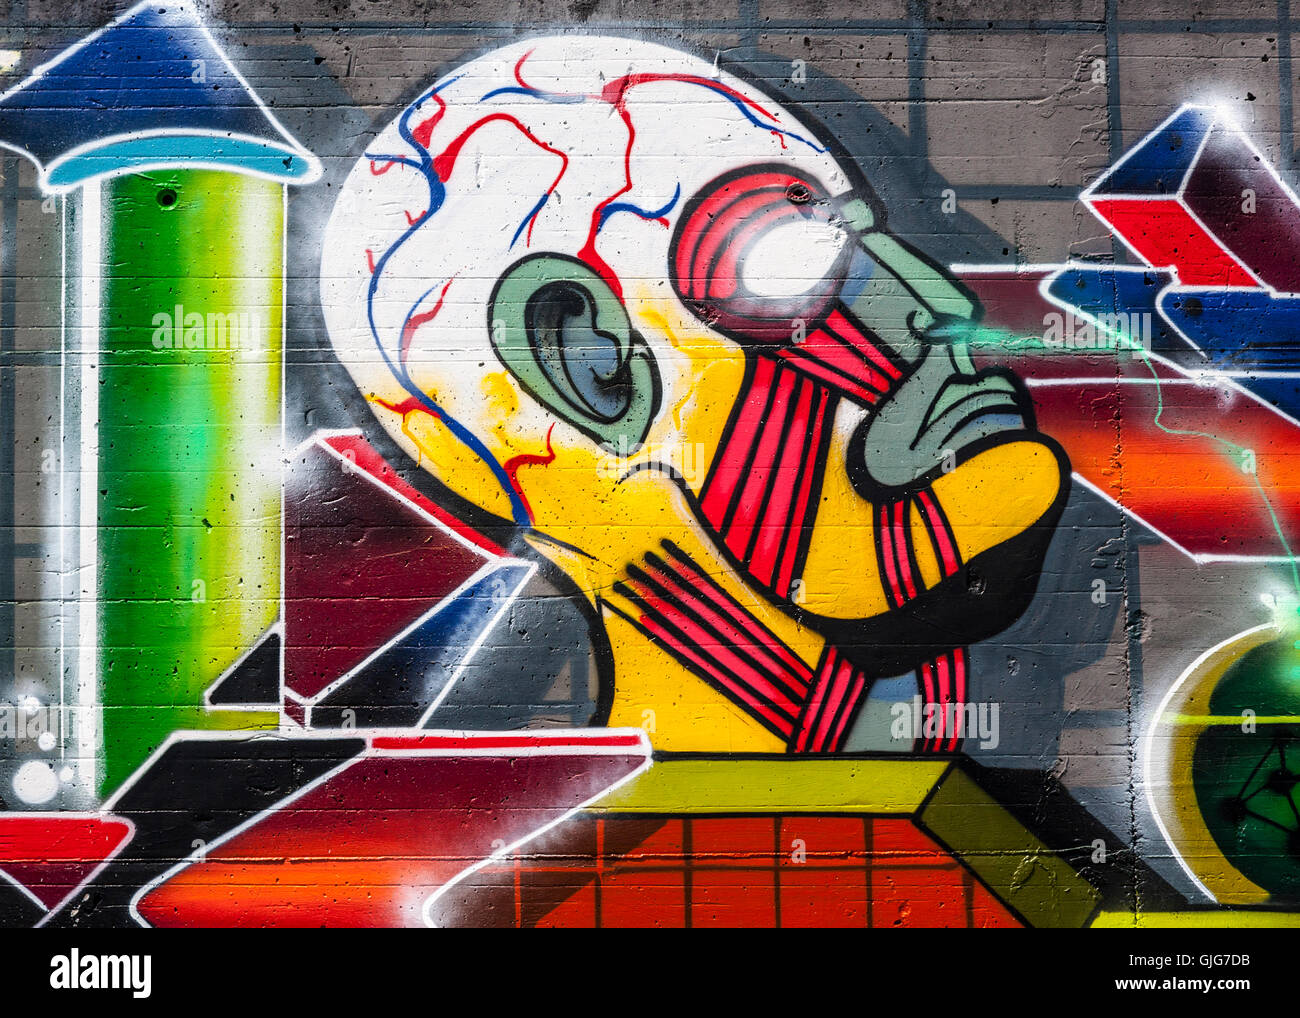 Graffiti head breathing chemical fumes sprayed on the remnant of an old wall, Friedrichshain, Berlin, Germany BHZ. - Stock Image